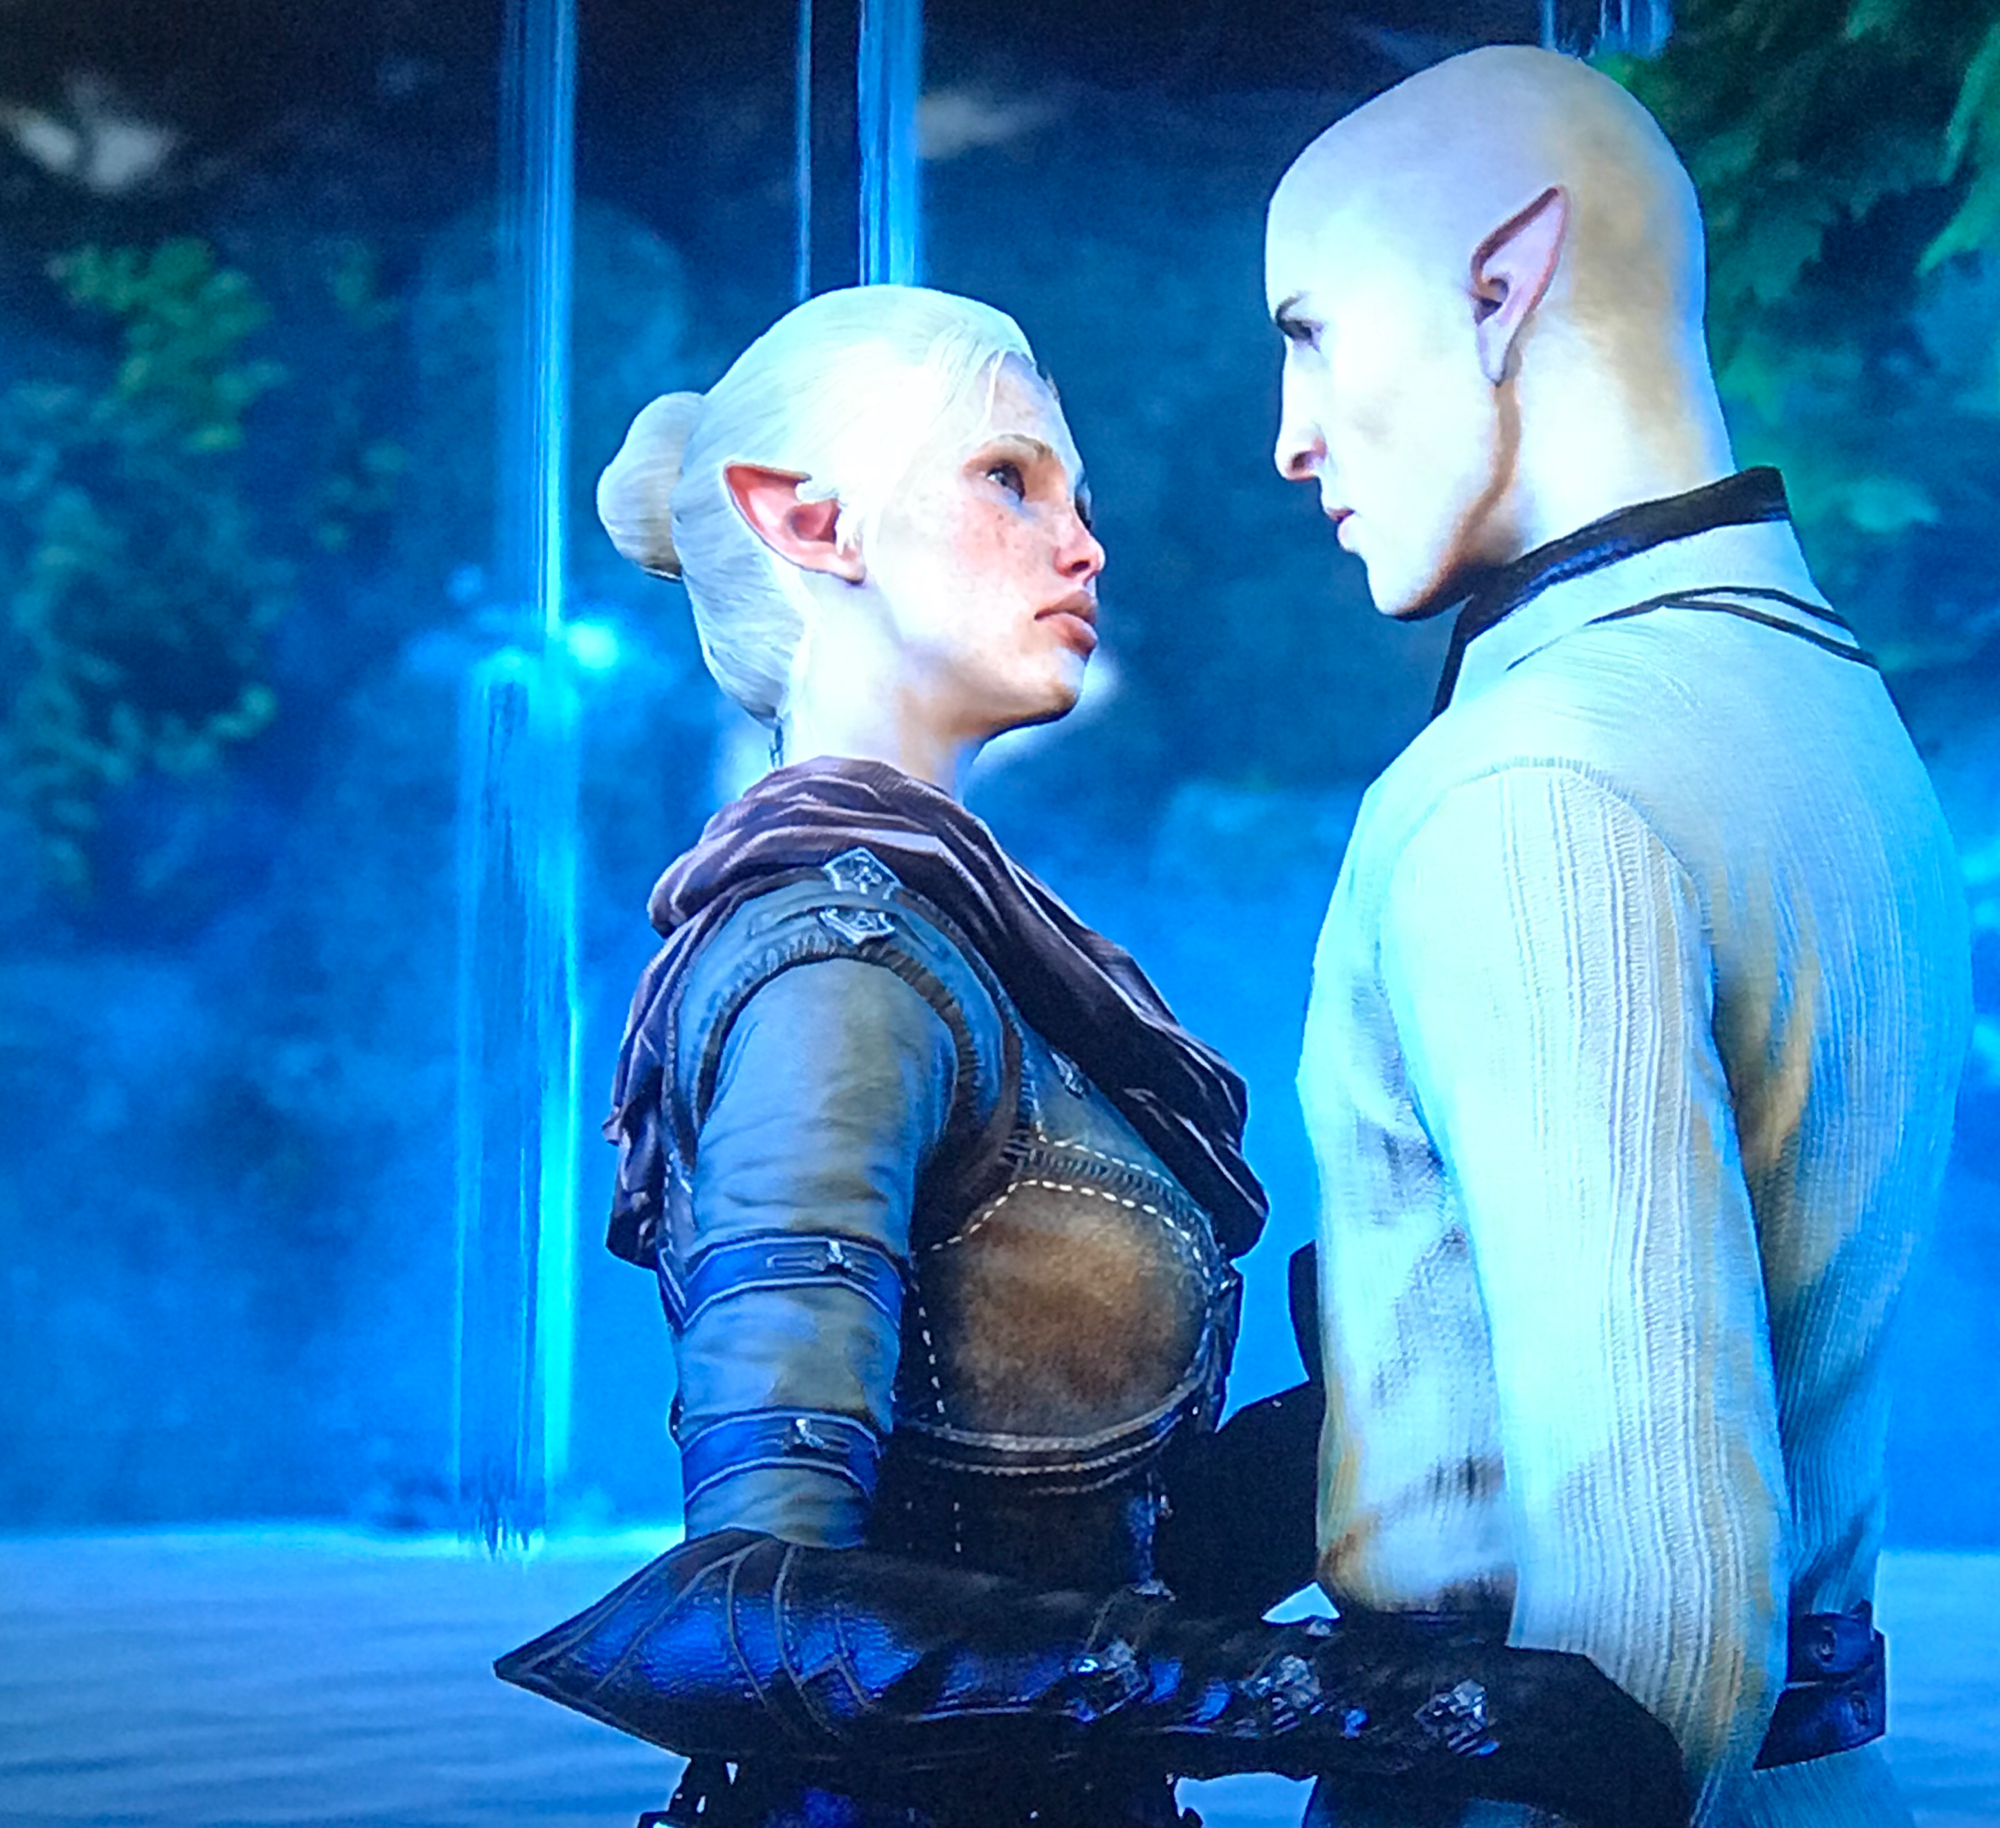 Who else hopes Solavellan continues in Dragon Age 4?